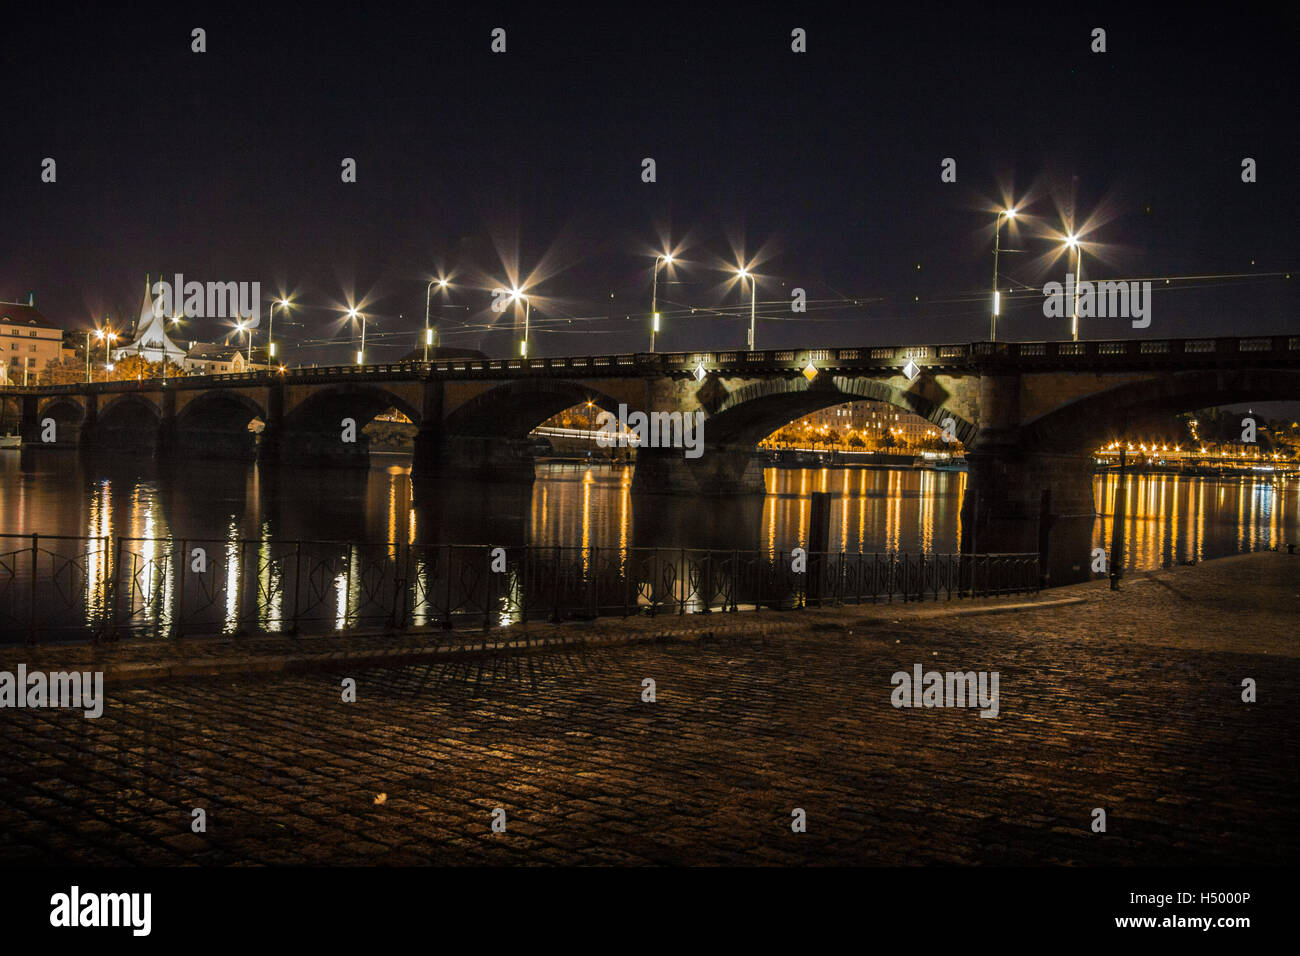 Emmaus Monastry and Palackeho Bridge, Prague at night - Stock Image